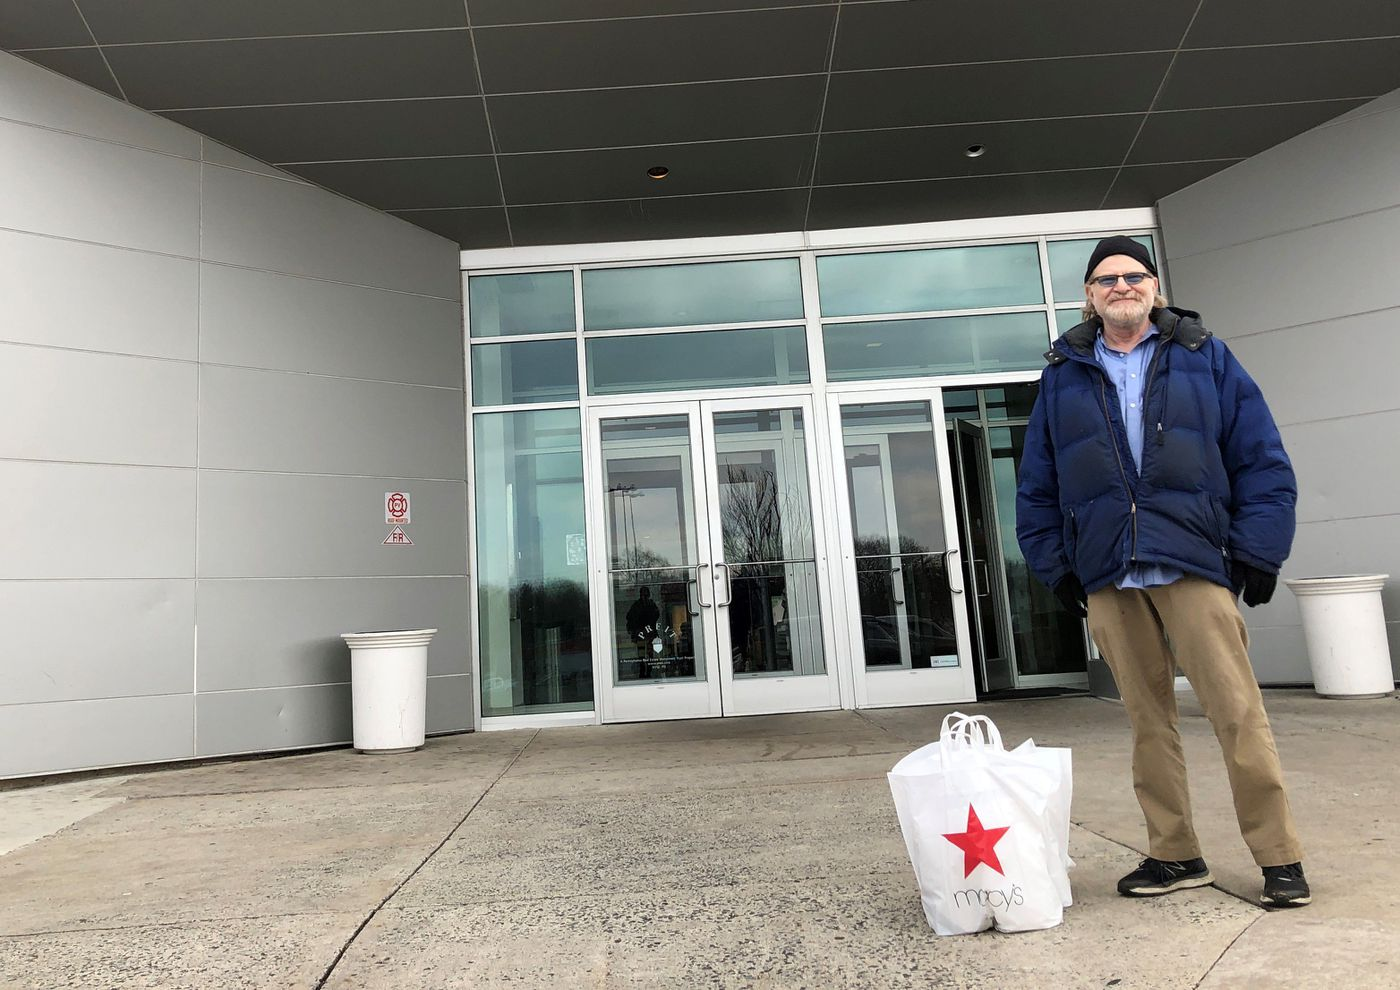 James Beer, of Cherry Hill, leaving the Cherry Hill Mall in South Jersey, Tuesday afternoon, March 17, 2020, shortly after Gov. Phil Murphy said all malls in the state would have to close indefinitely by 8 p.m.